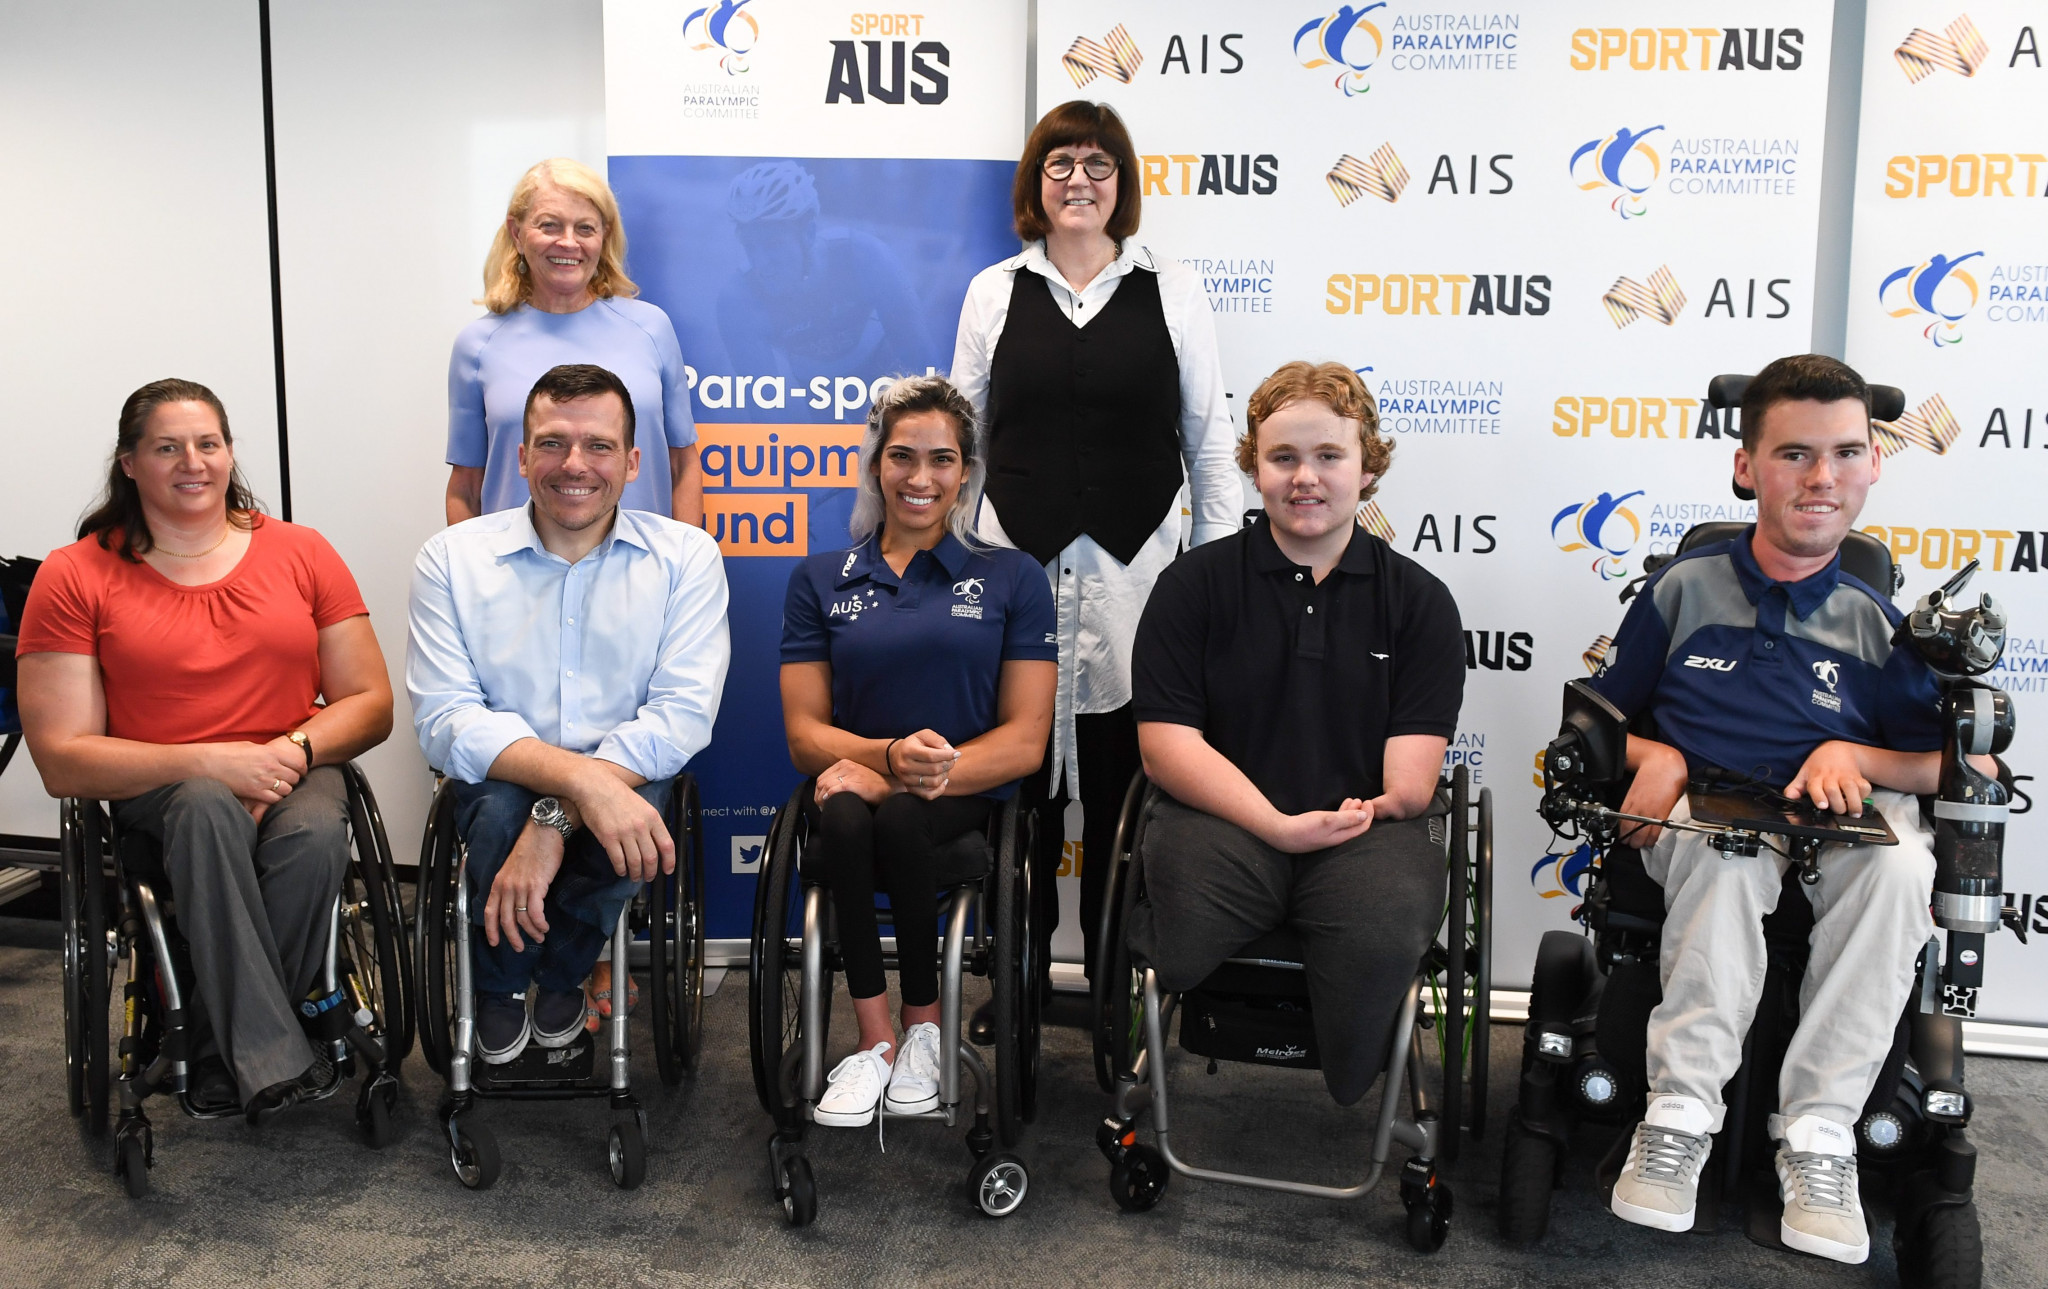 New scheme launched to help support cost of equipment for Australian athletes competing in Para-sport